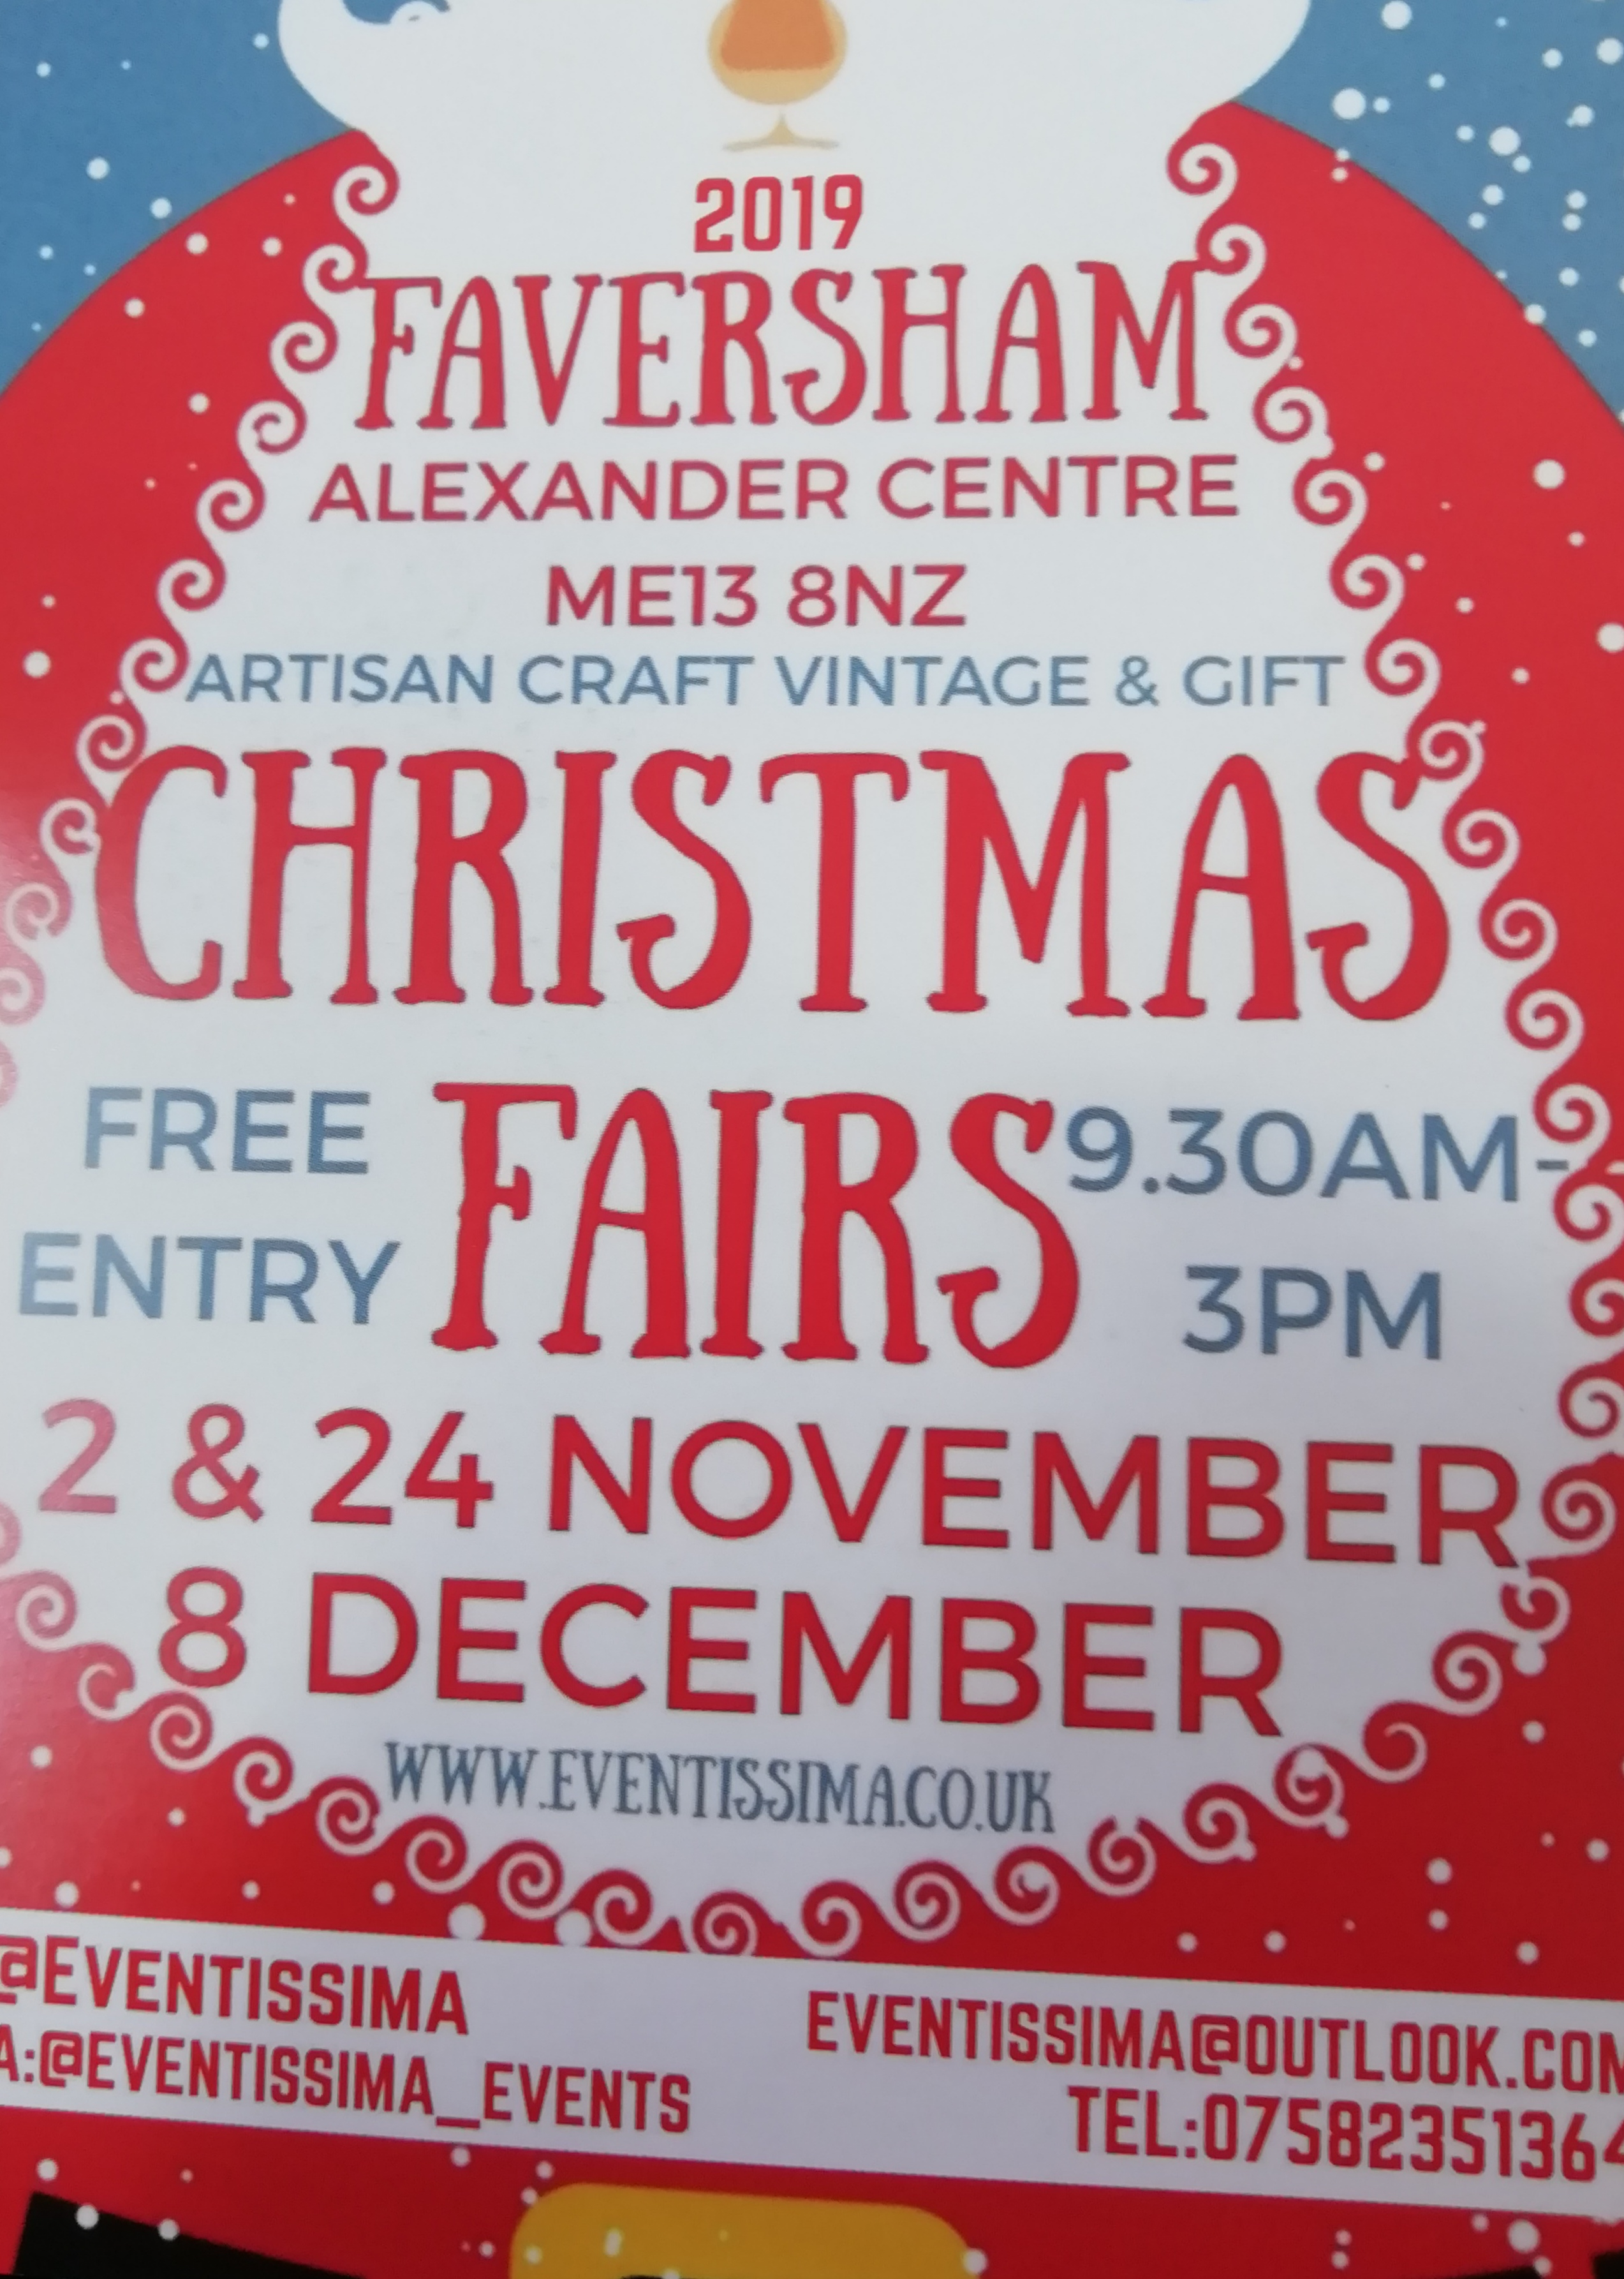 Eventissima Artisan Craft, Vintage and Gift Christmas Fair